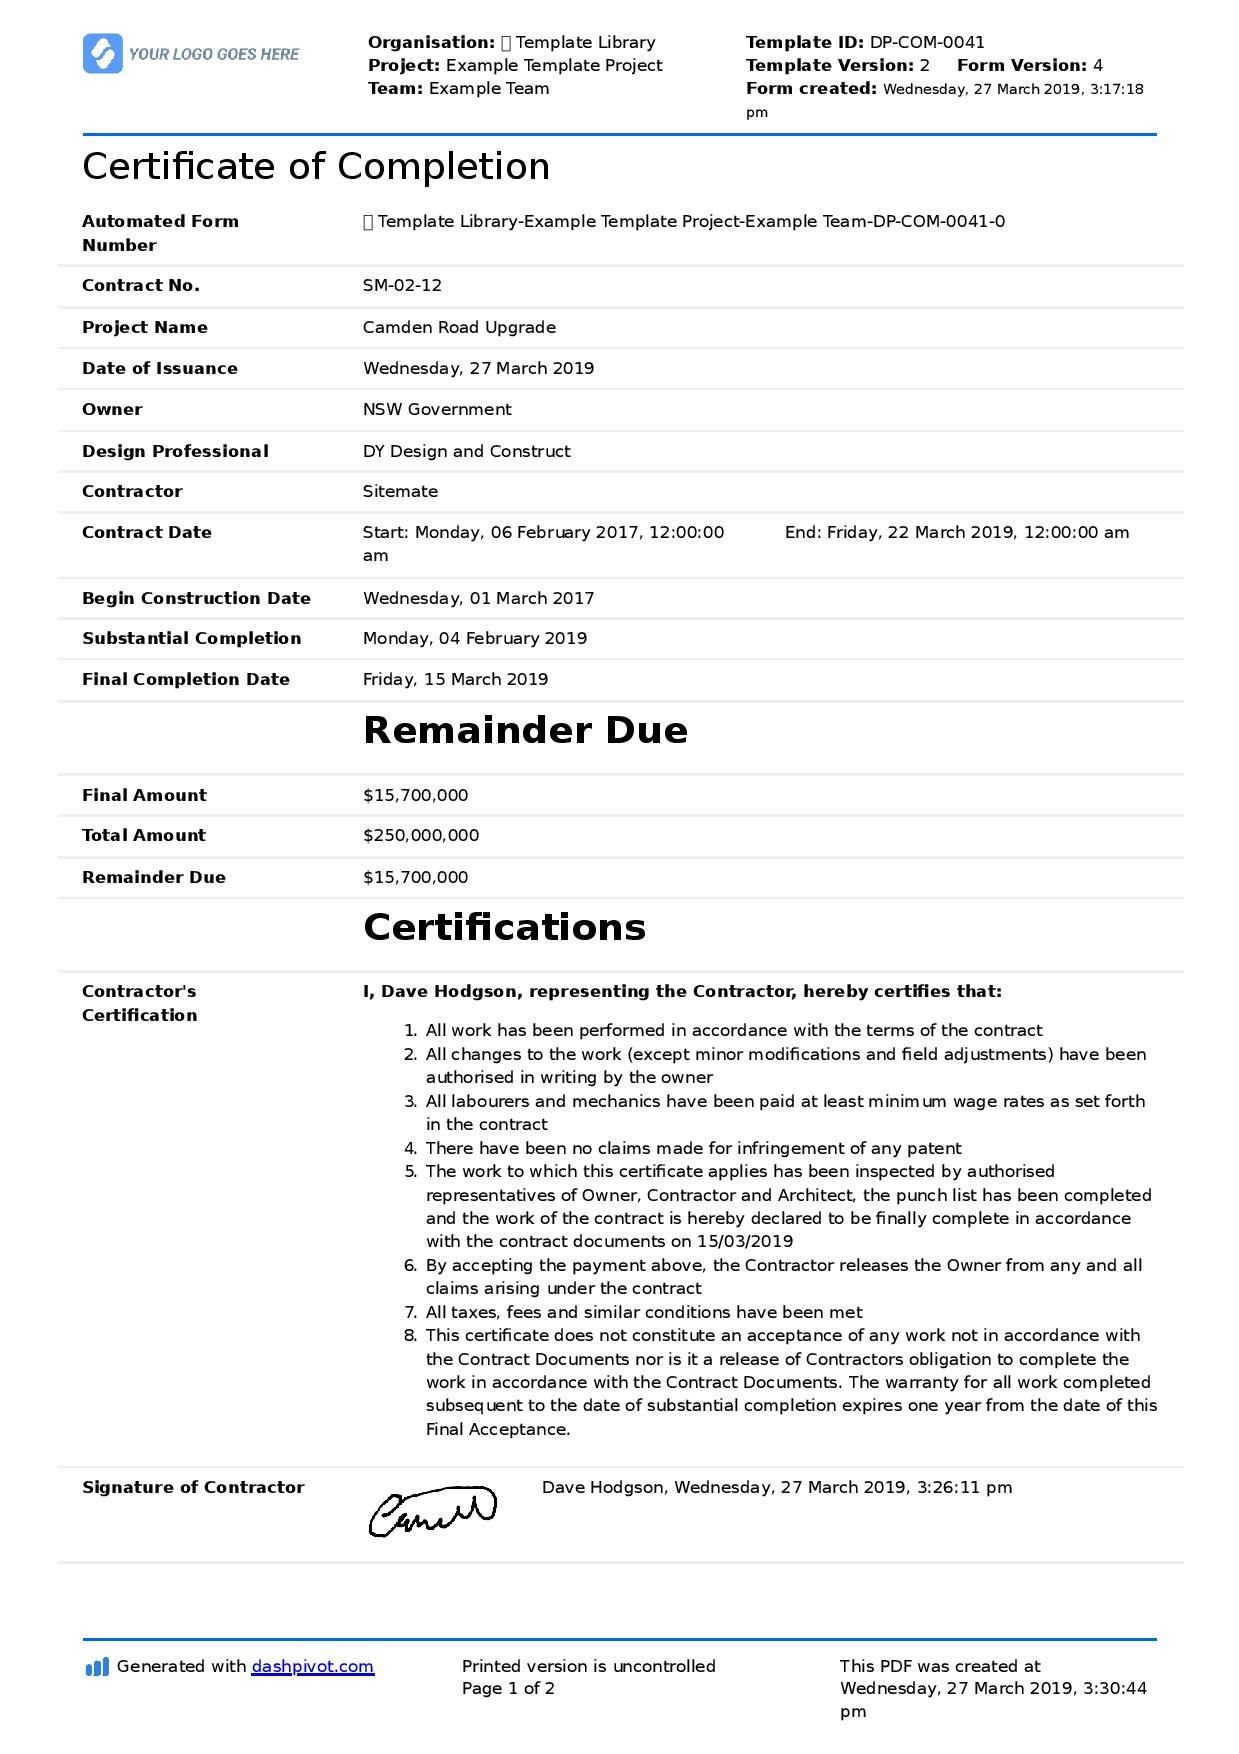 Certificate Of Completion For Construction Free Template  Sample In Certificate Of Completion Template Construction